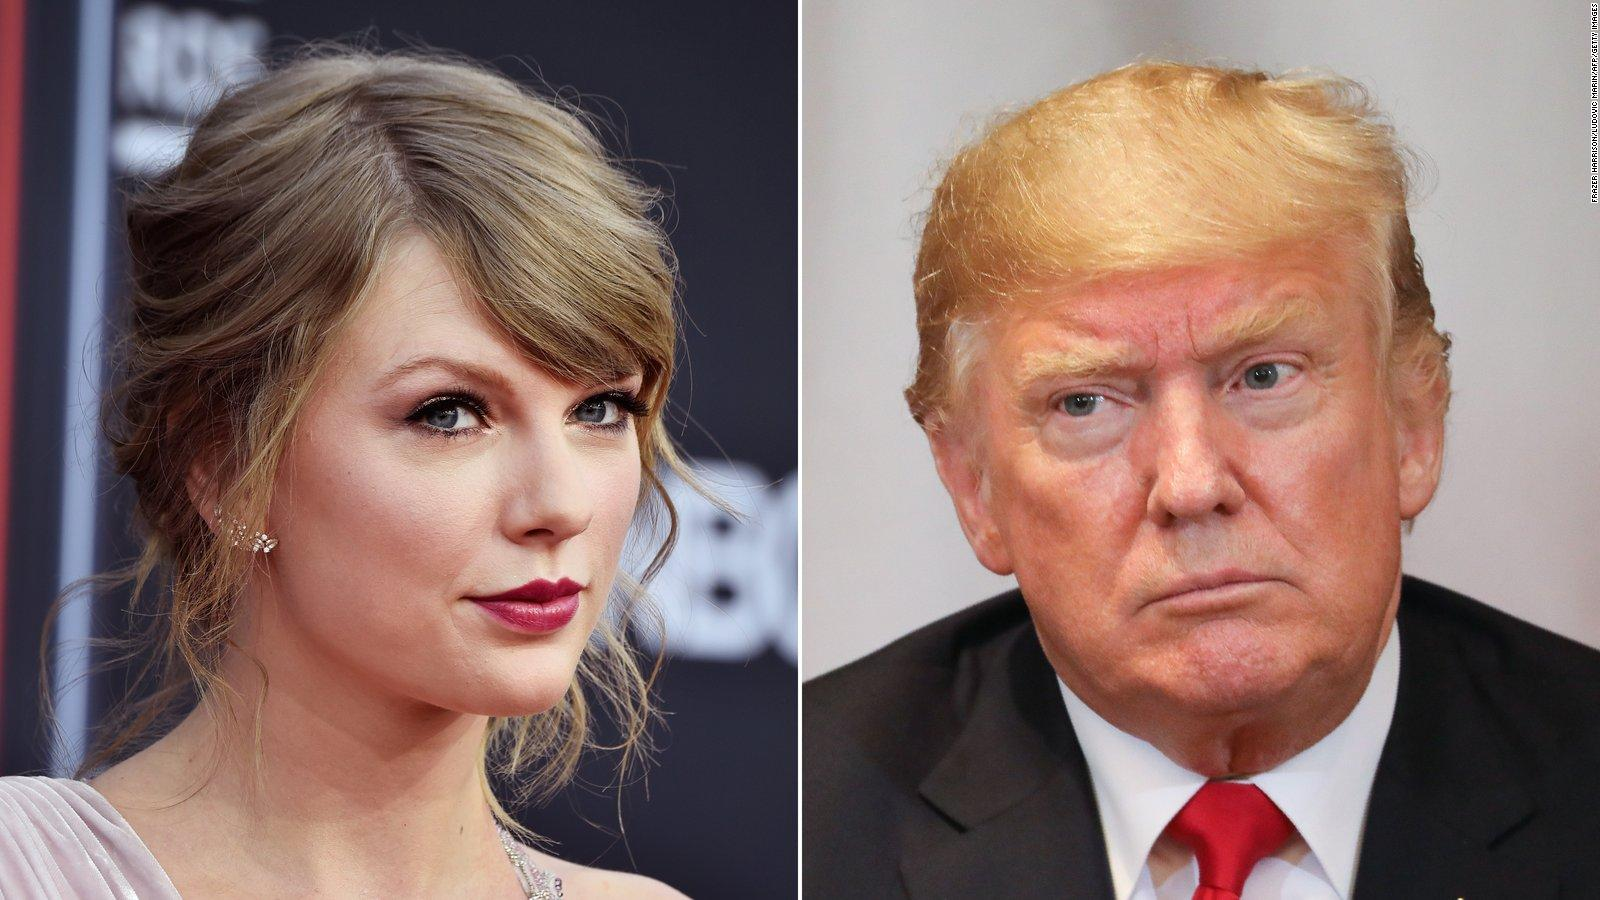 Taylor Swift Calls Out Trump Over Late Night Minnesota Tweet You Have The Nerve To Feign Moral Superiority Before Threatening Violence Cnnpolitics Taylor swift twitter videos and latest news articles; trump i like swift s music about 25 less now